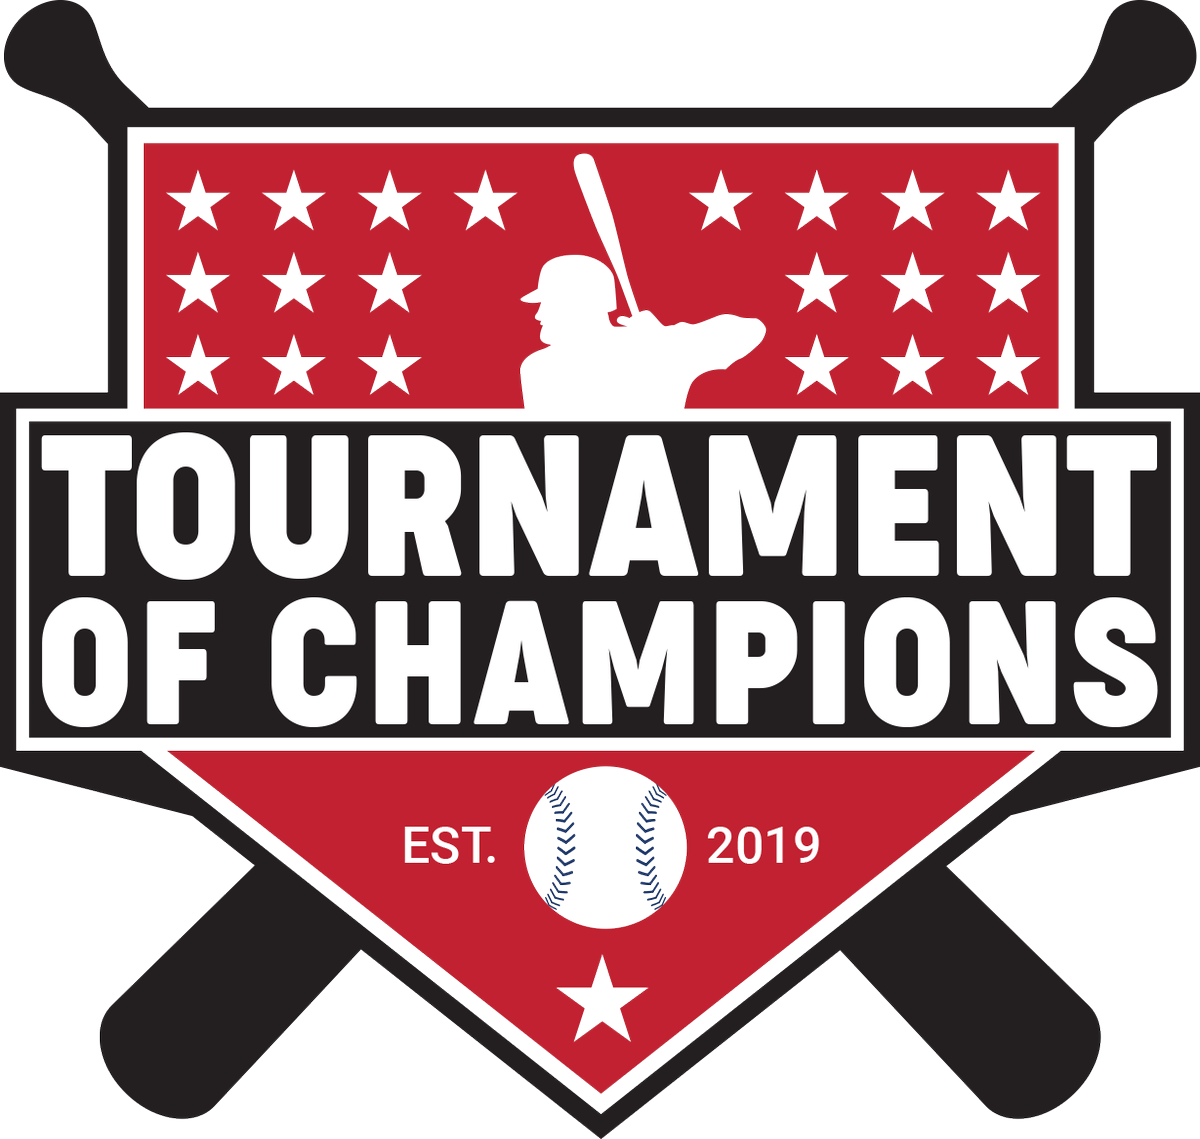 We are less than 2 hours away from crowning the Season 3 TOC Champion. Who is it going to be? I can't wait to see who takes this down. Good luck to all and may the best goon win.   First pitch: 3:05 Eastern   http:// Twitch.tv/JugsySiegel      #TournamentOfChampions #Season3<br>http://pic.twitter.com/ywpKRmEf0y